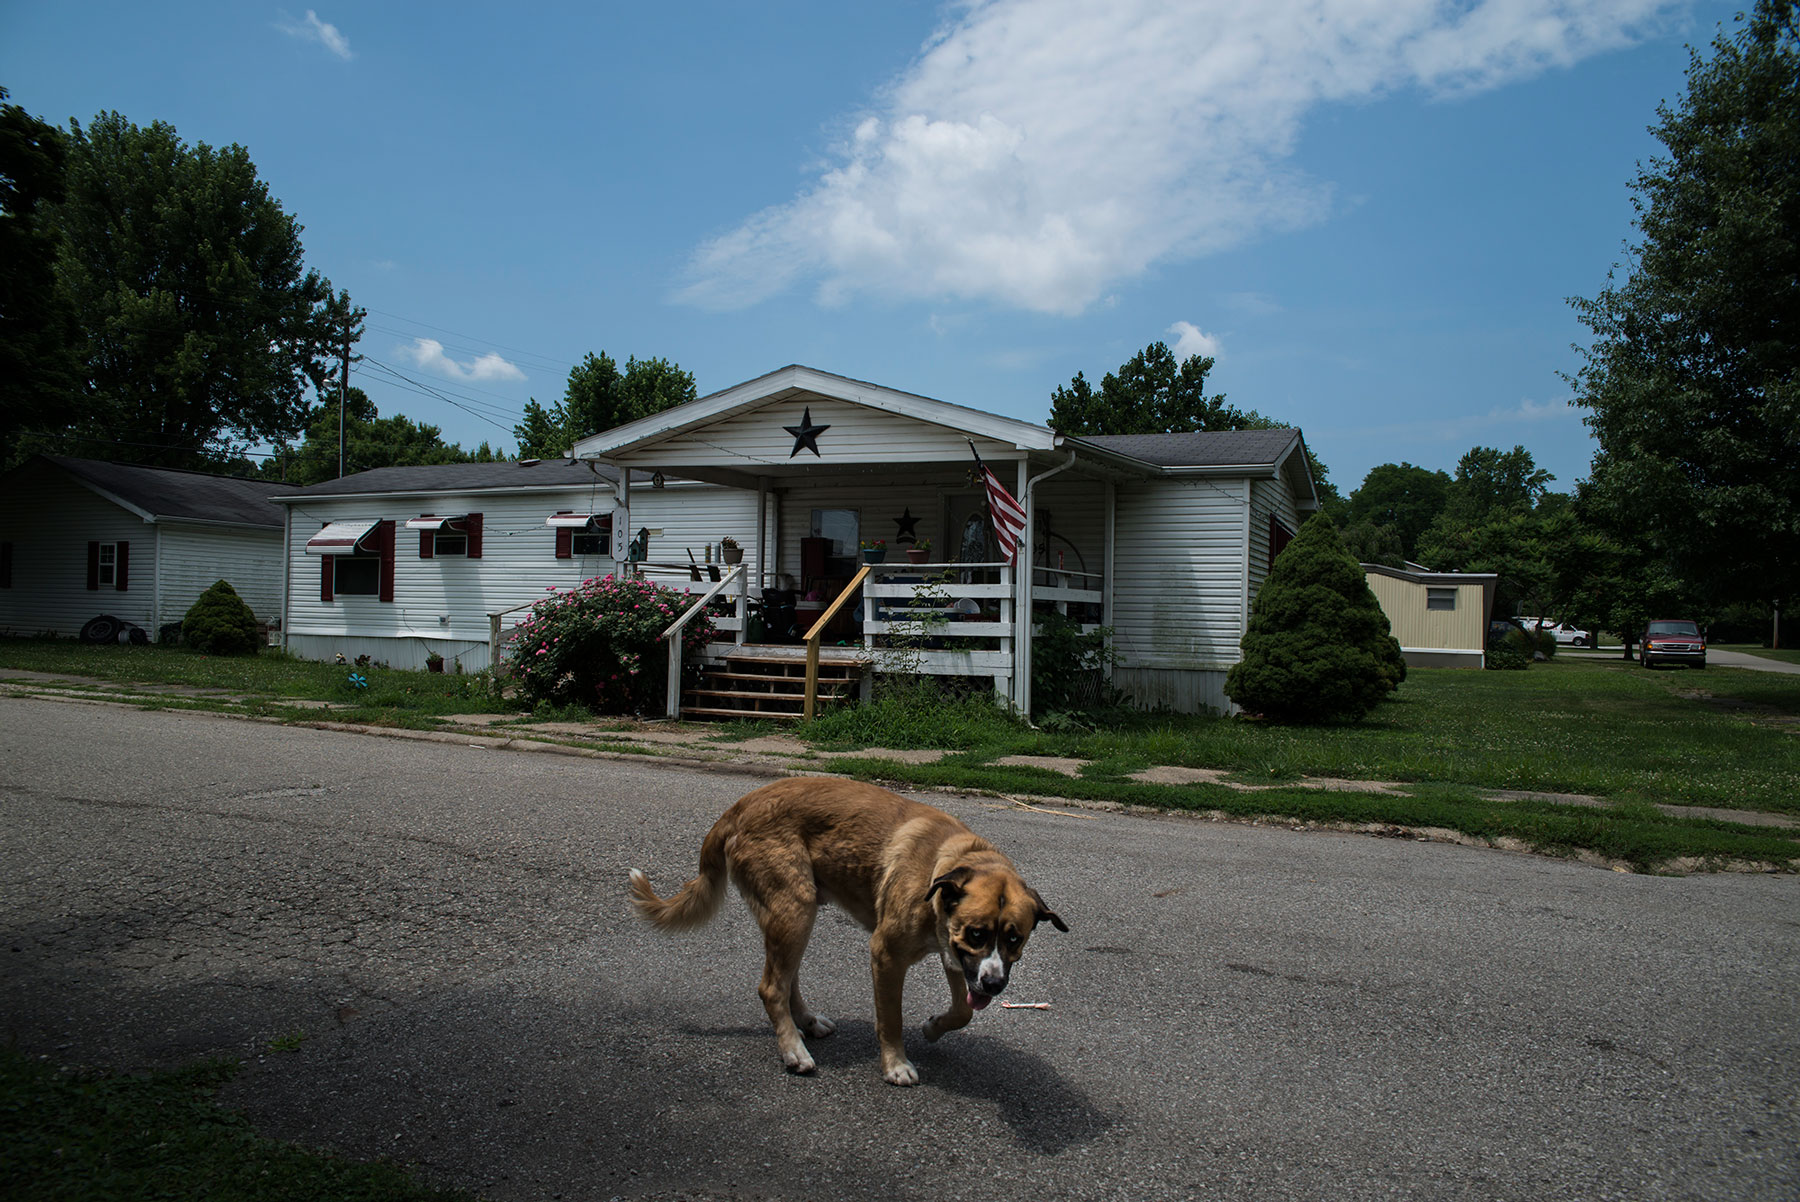 A dog plays in the streets of Newport, Indiana, located in Vermillion County. Indiana has the highest voter removal rate in comparison with other states, and Vermillion County has a higher removal rate than any other county in Indiana. (Roman Knertser/News21)